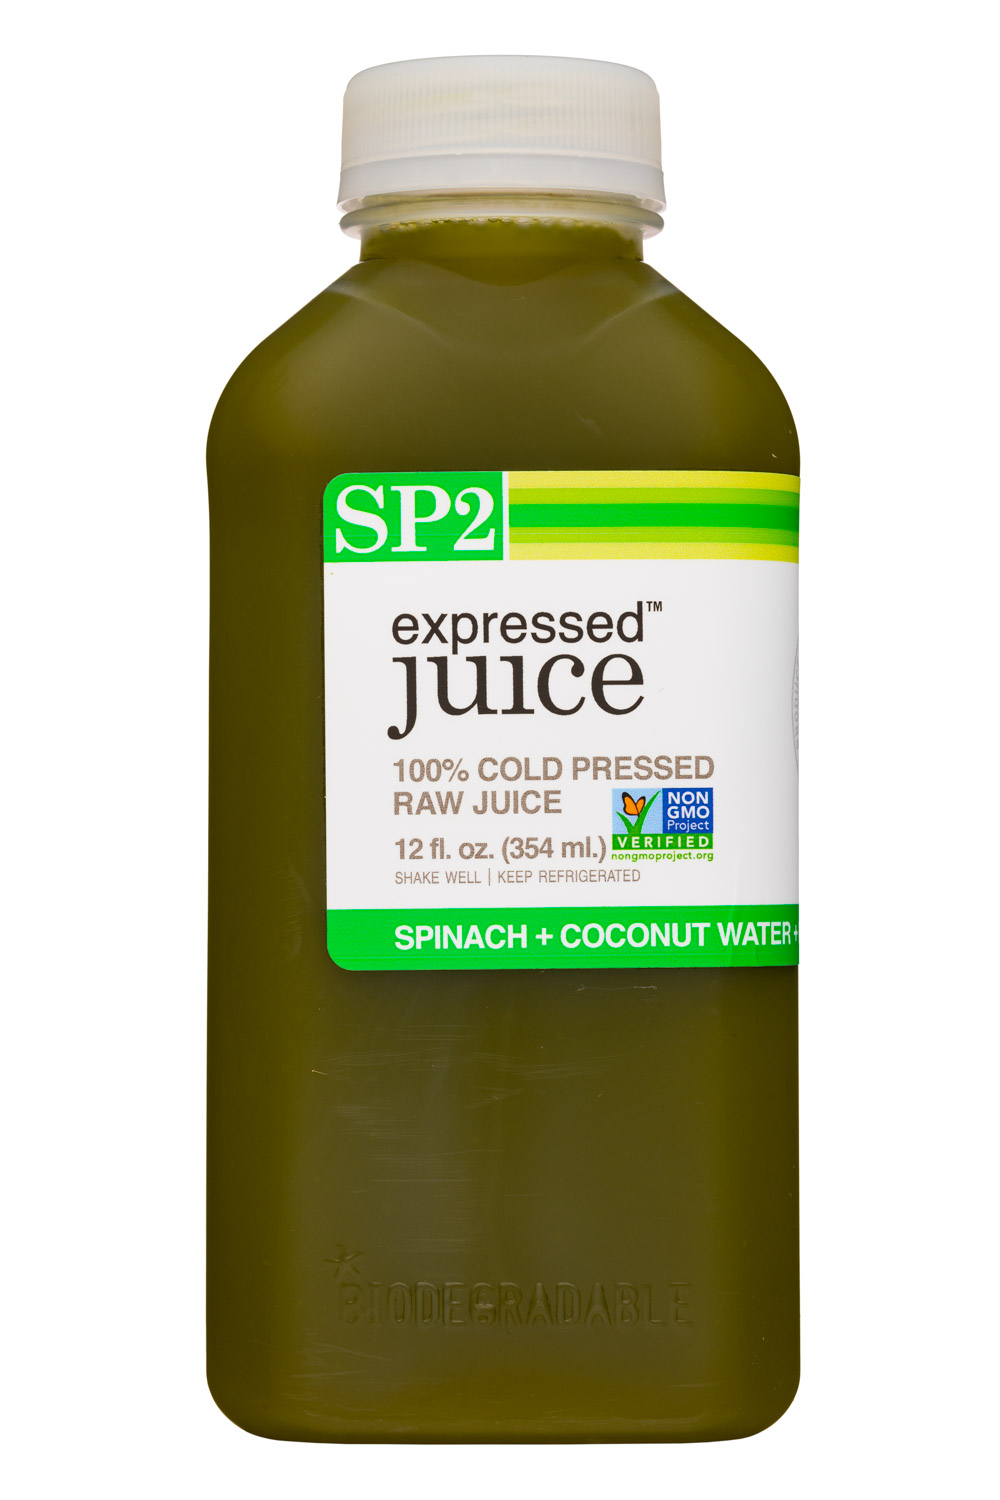 SP2 - Spinach + Coconut Water + Pineapple + Lime